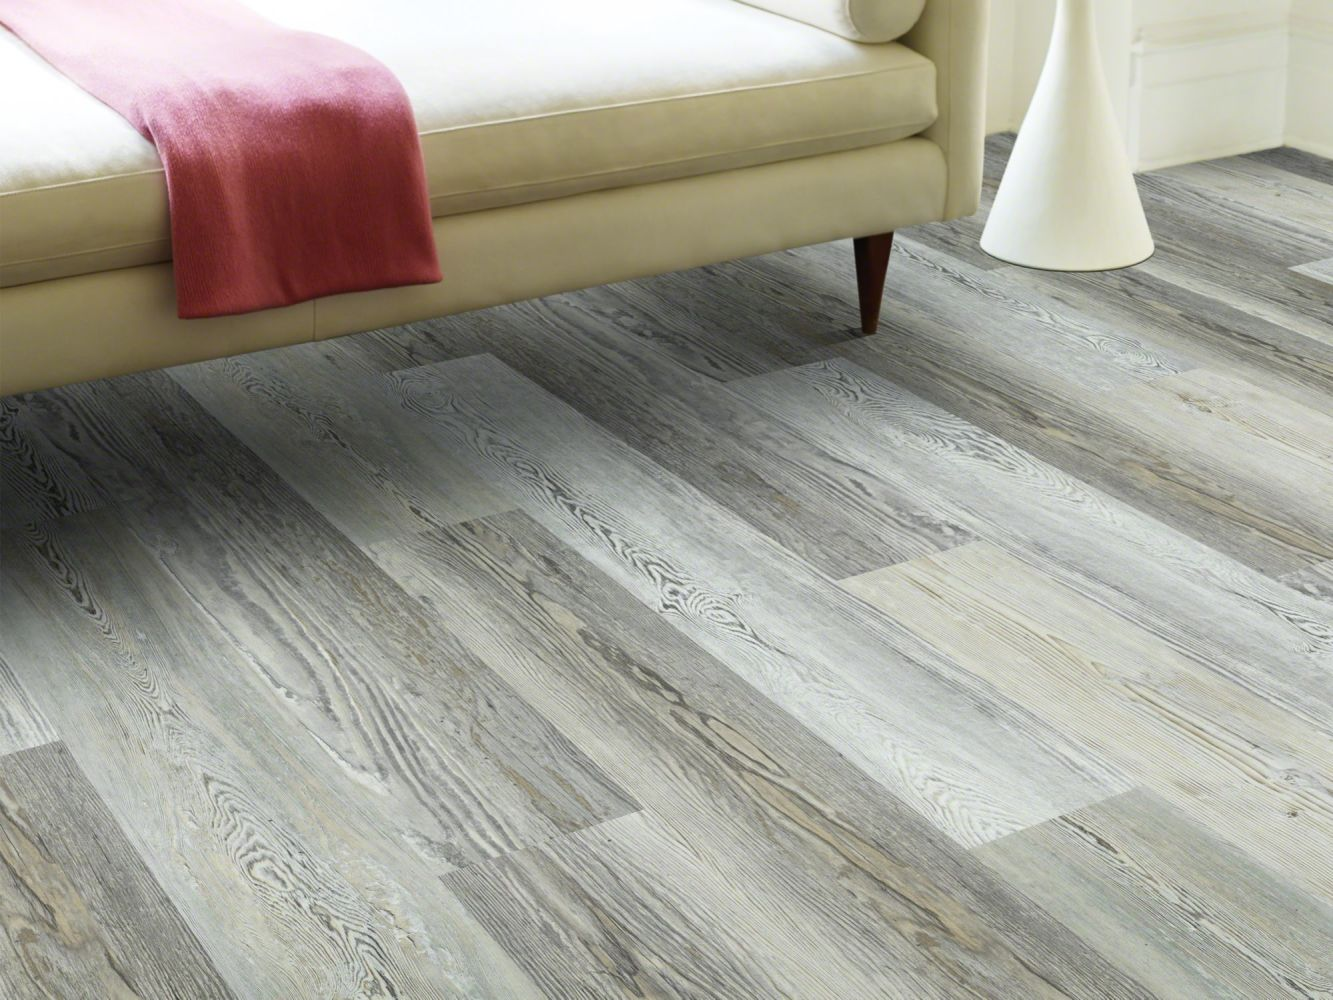 Shaw Floors Resilient Residential Rainier Plus Ashland Pine 05032_0456V